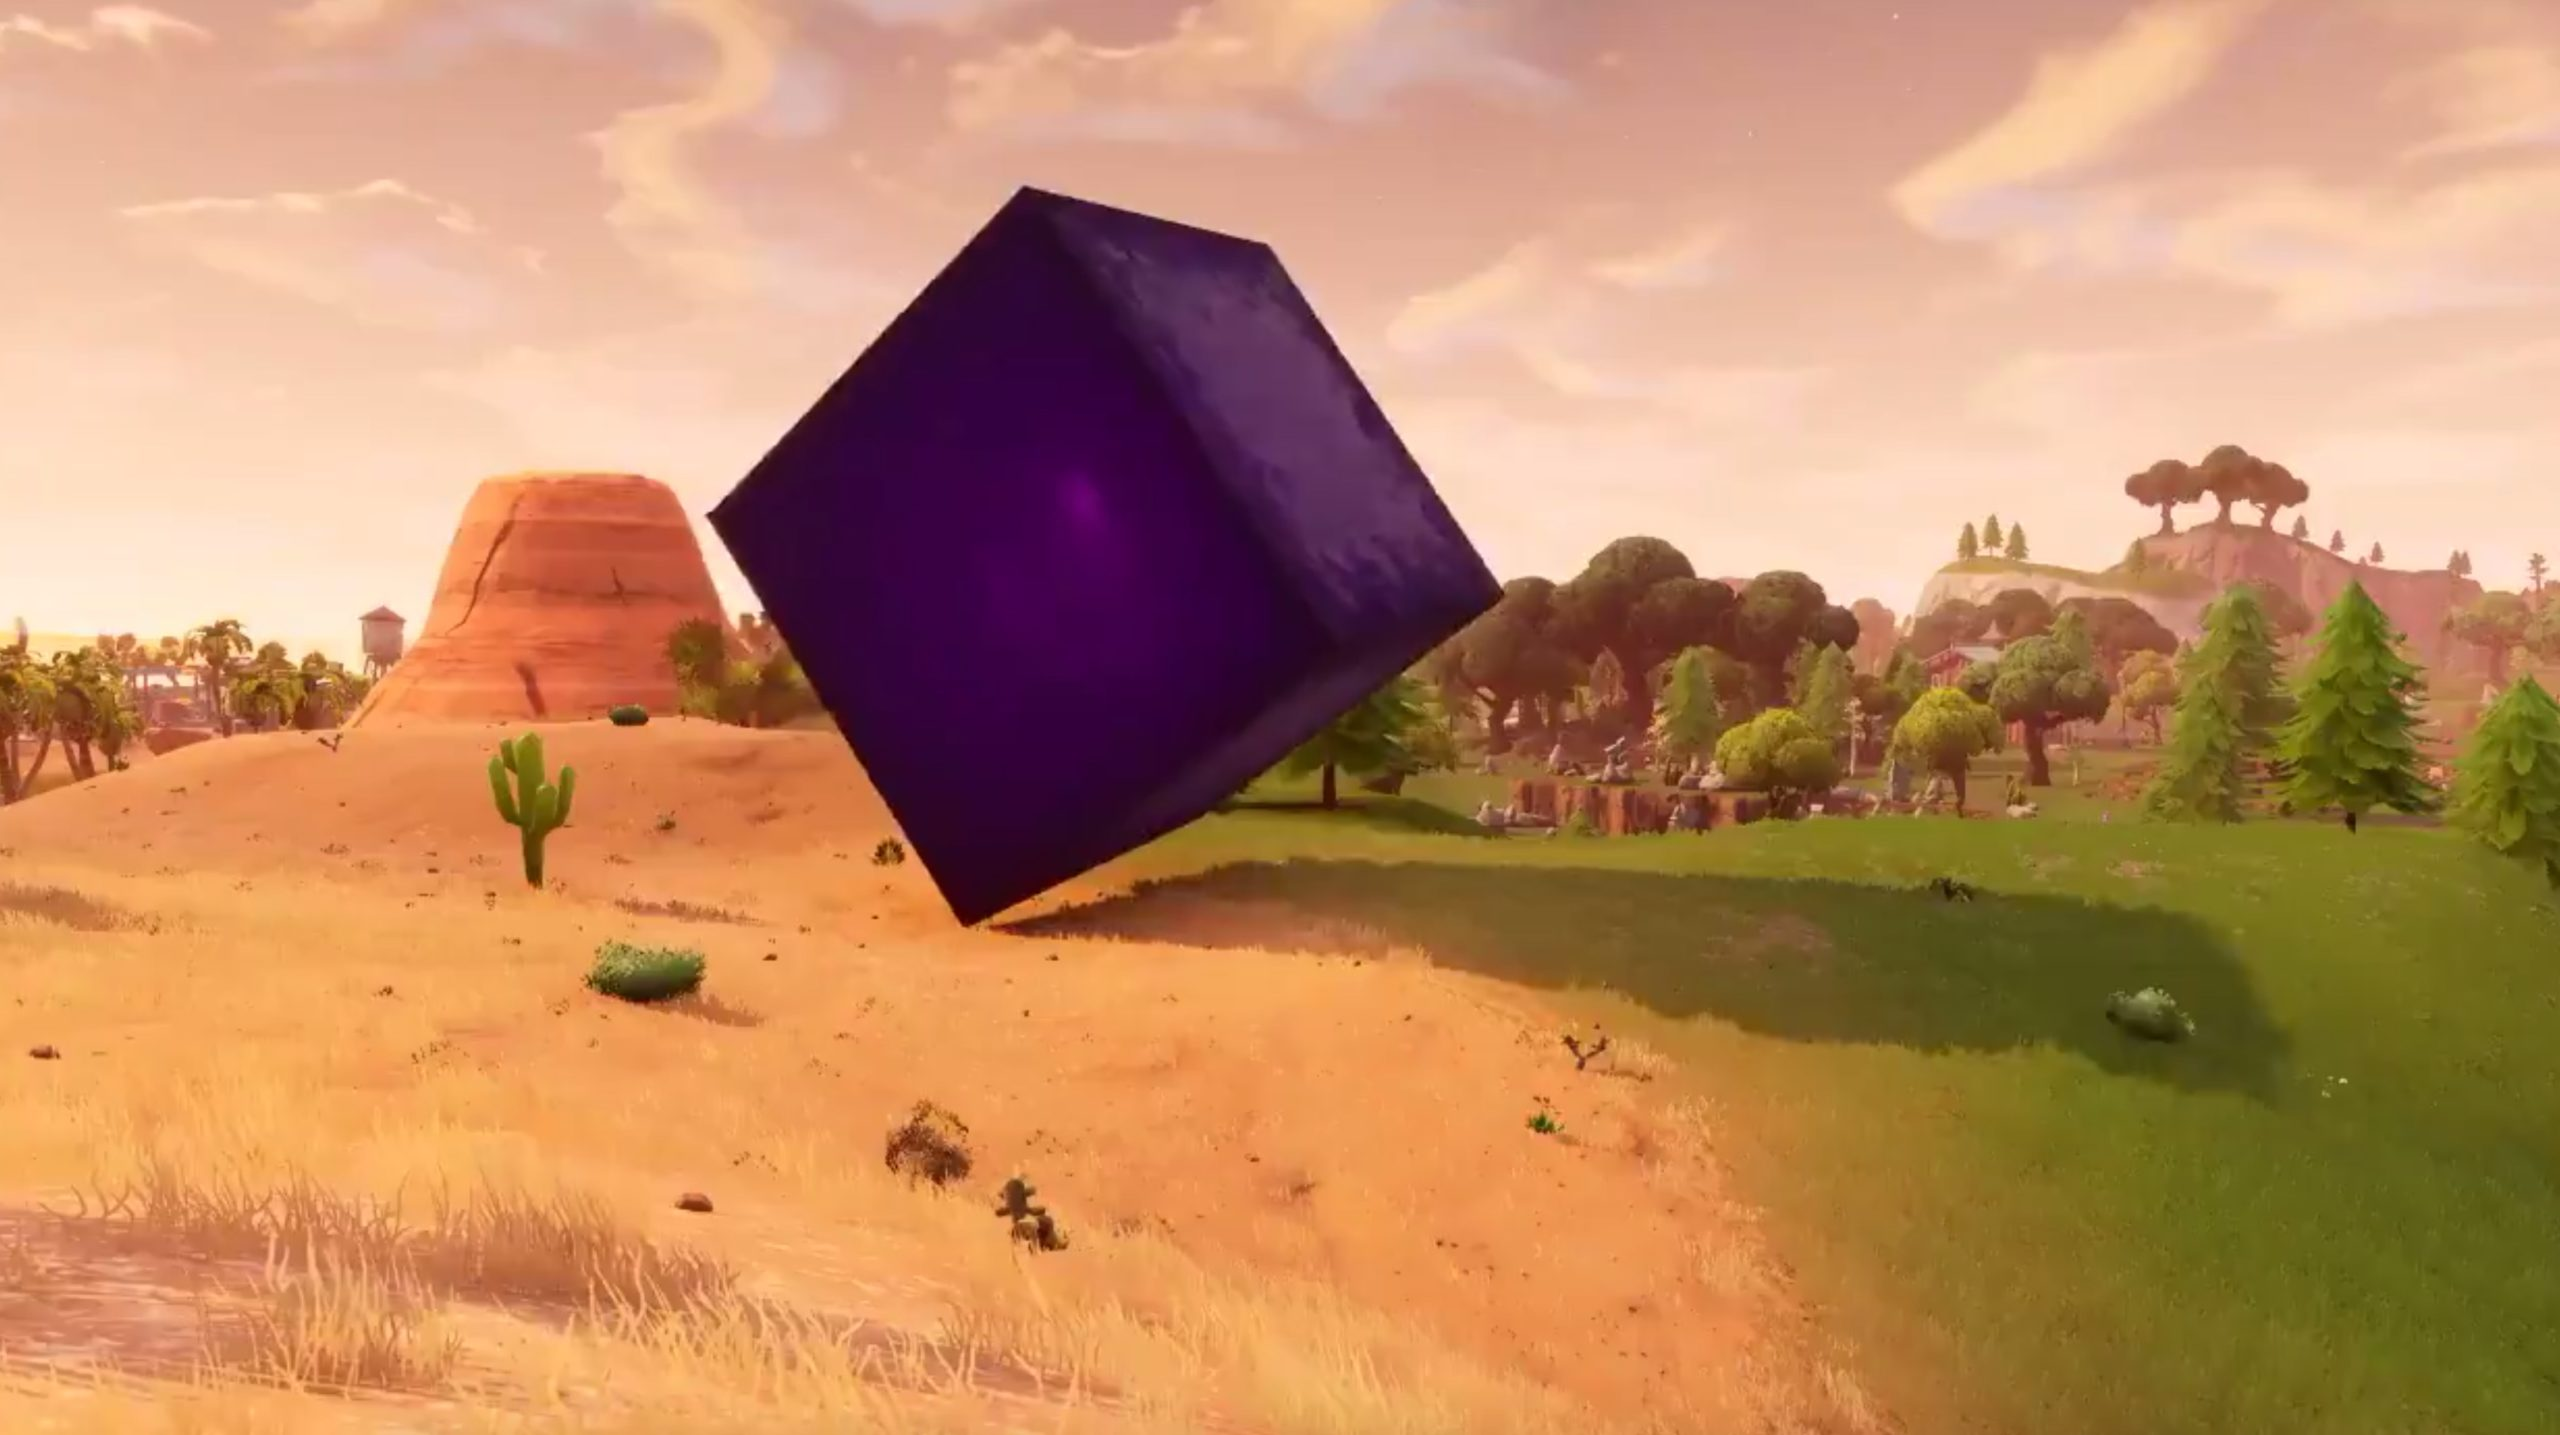 Fortnite Players Glitch Into Bouncy Purple Cube